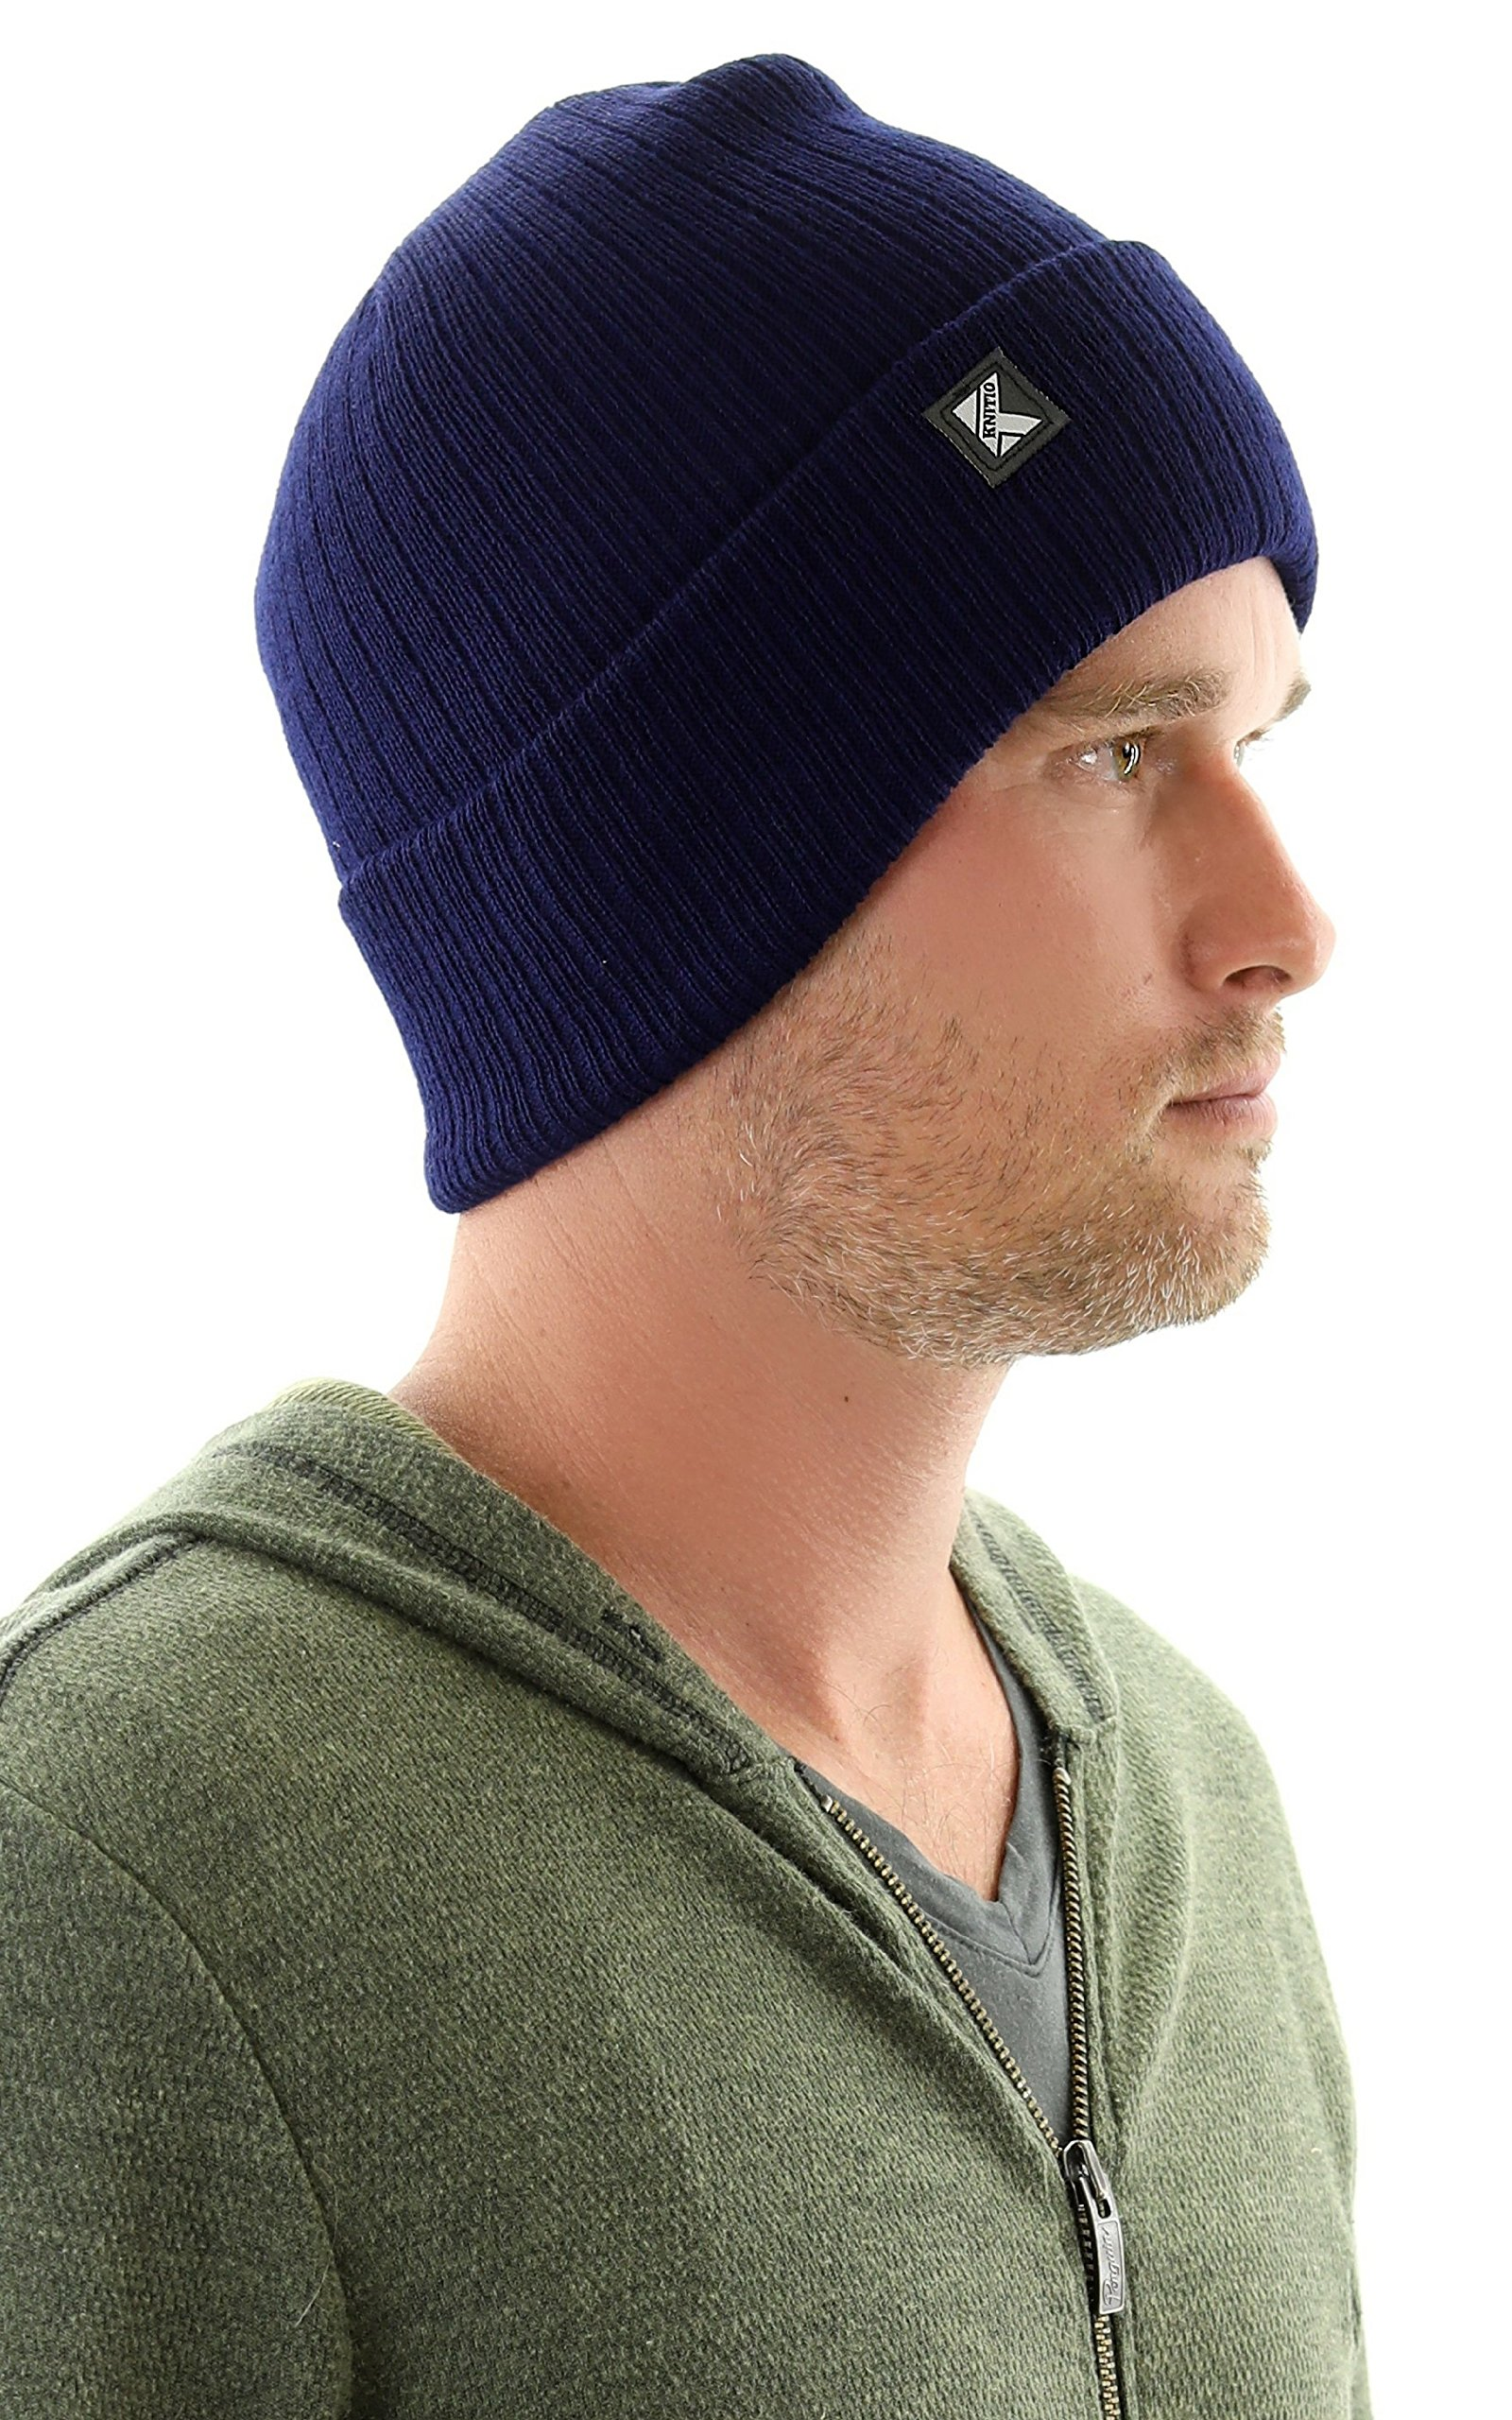 Knitio Men's Cuffed Winter Beanie With Thinsulate | Warm, Comfortable, Durable Winter Hats For Men | Navy by Knitio (Image #2)